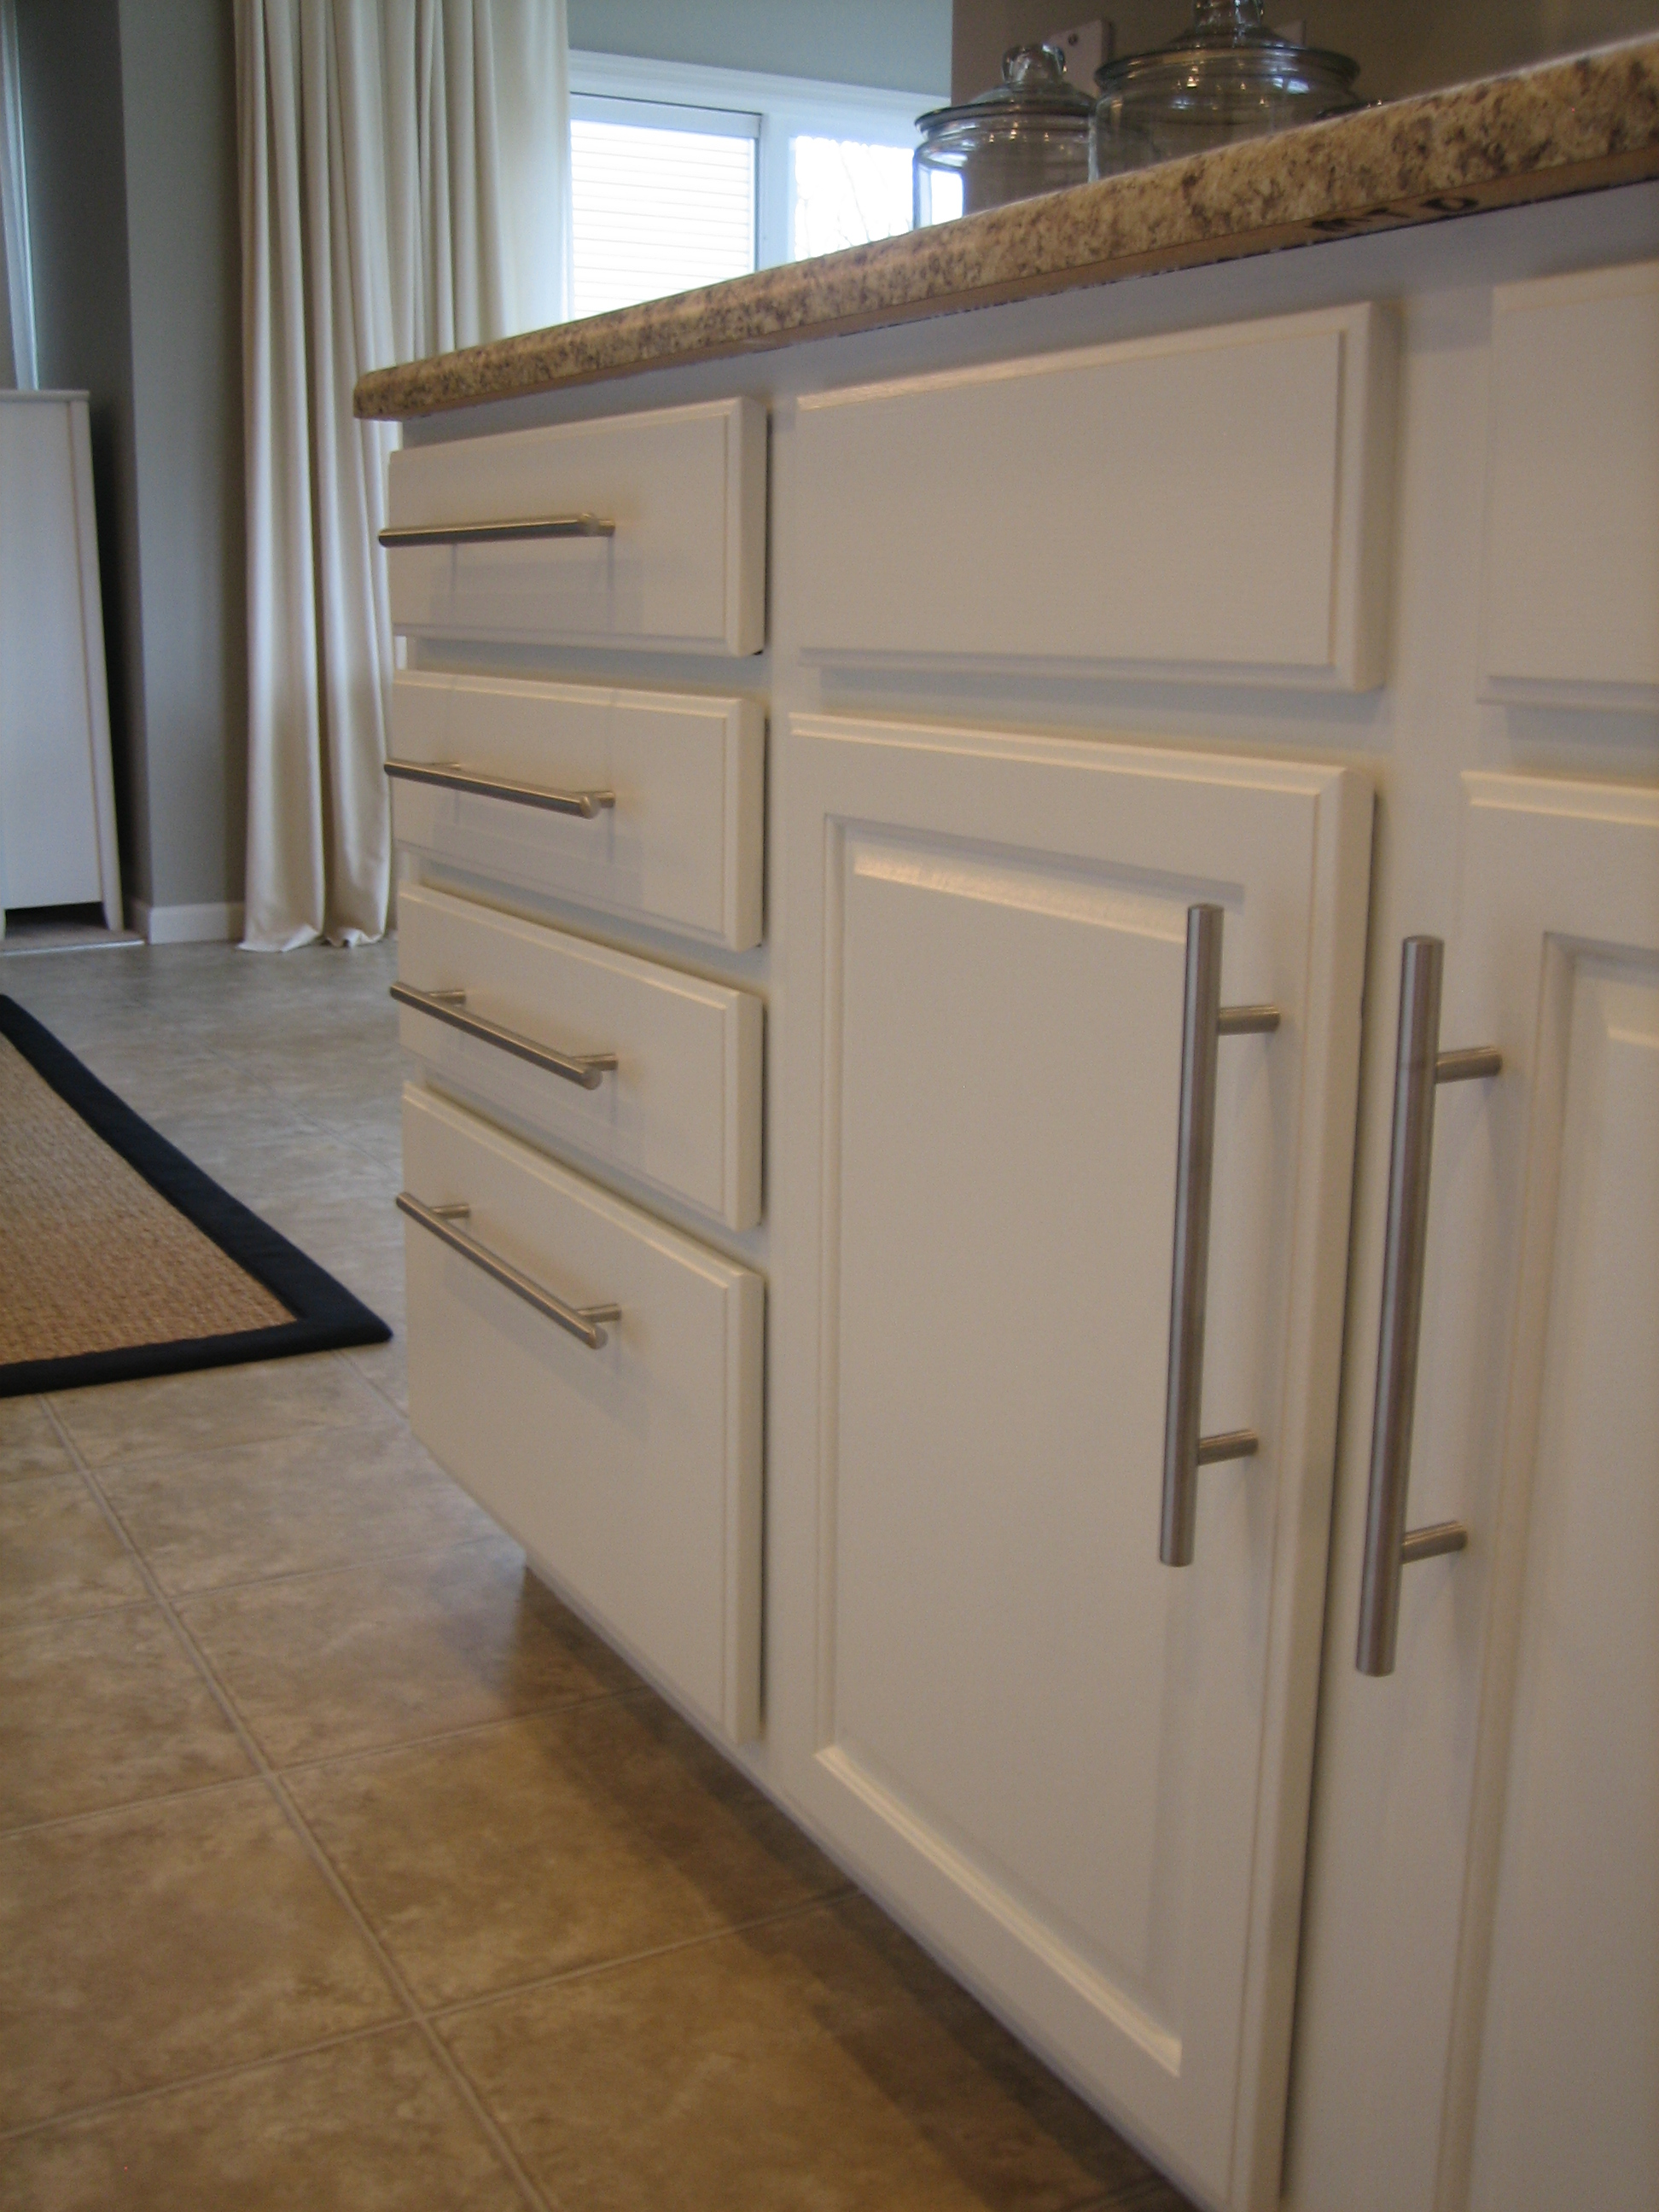 we painted the kitchen cabinets white kitchen cabinet supplies HOUSE TWEAKING